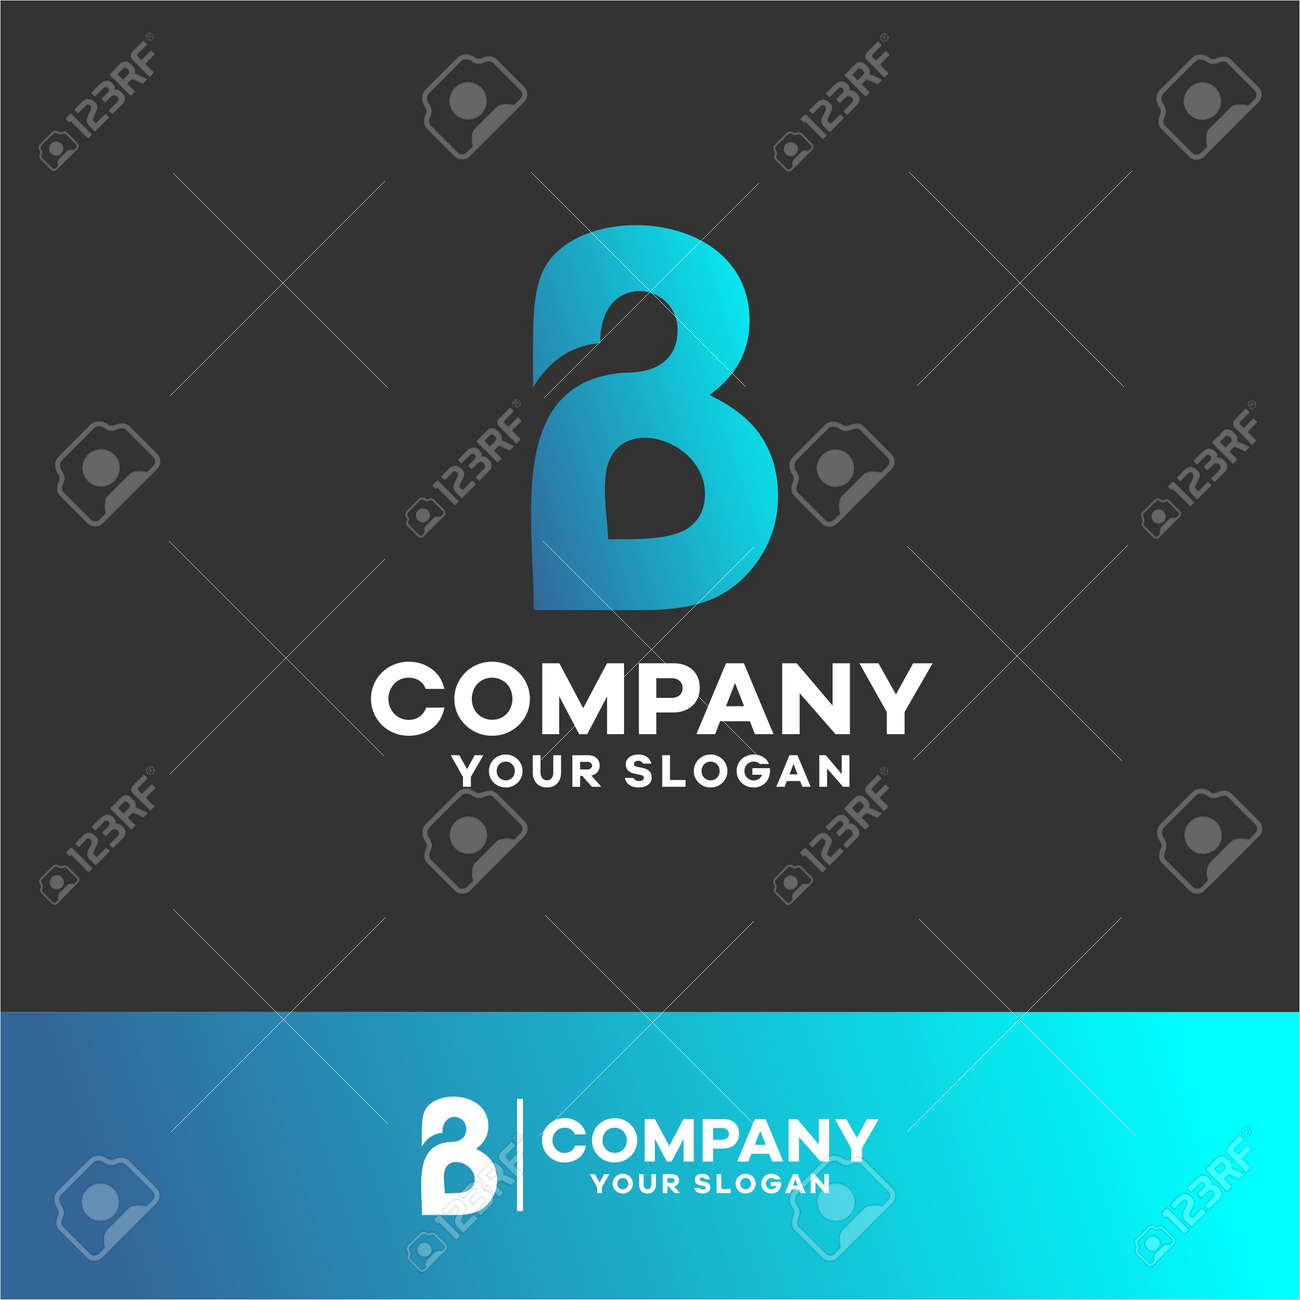 logo-letter-b-for-companies-with-the-initials-letter-b - 157862657